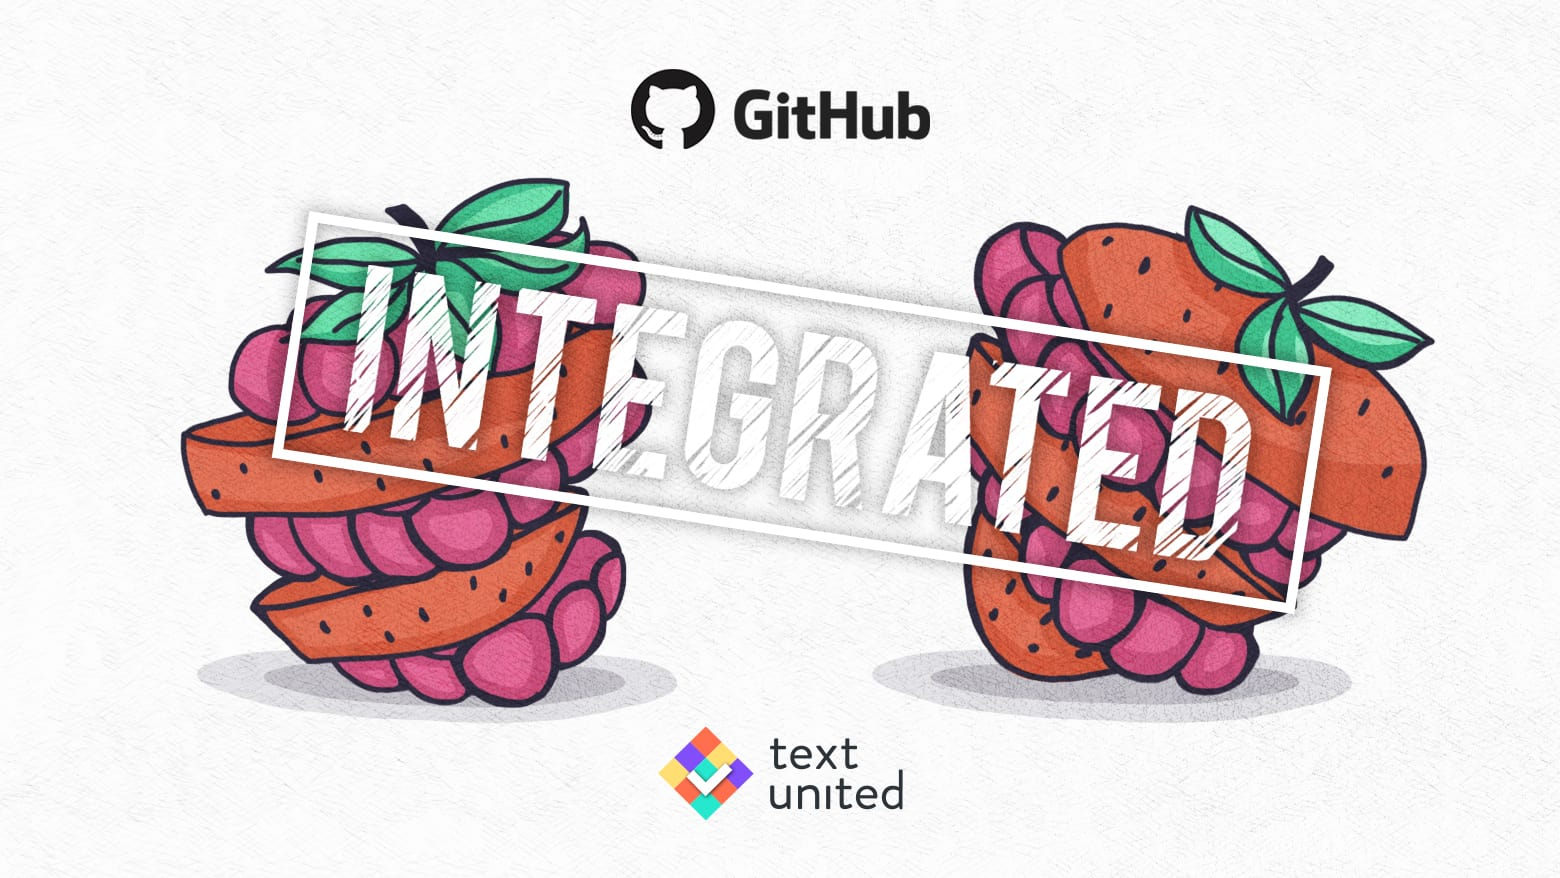 Text United's Github Integration: What Should You Know?